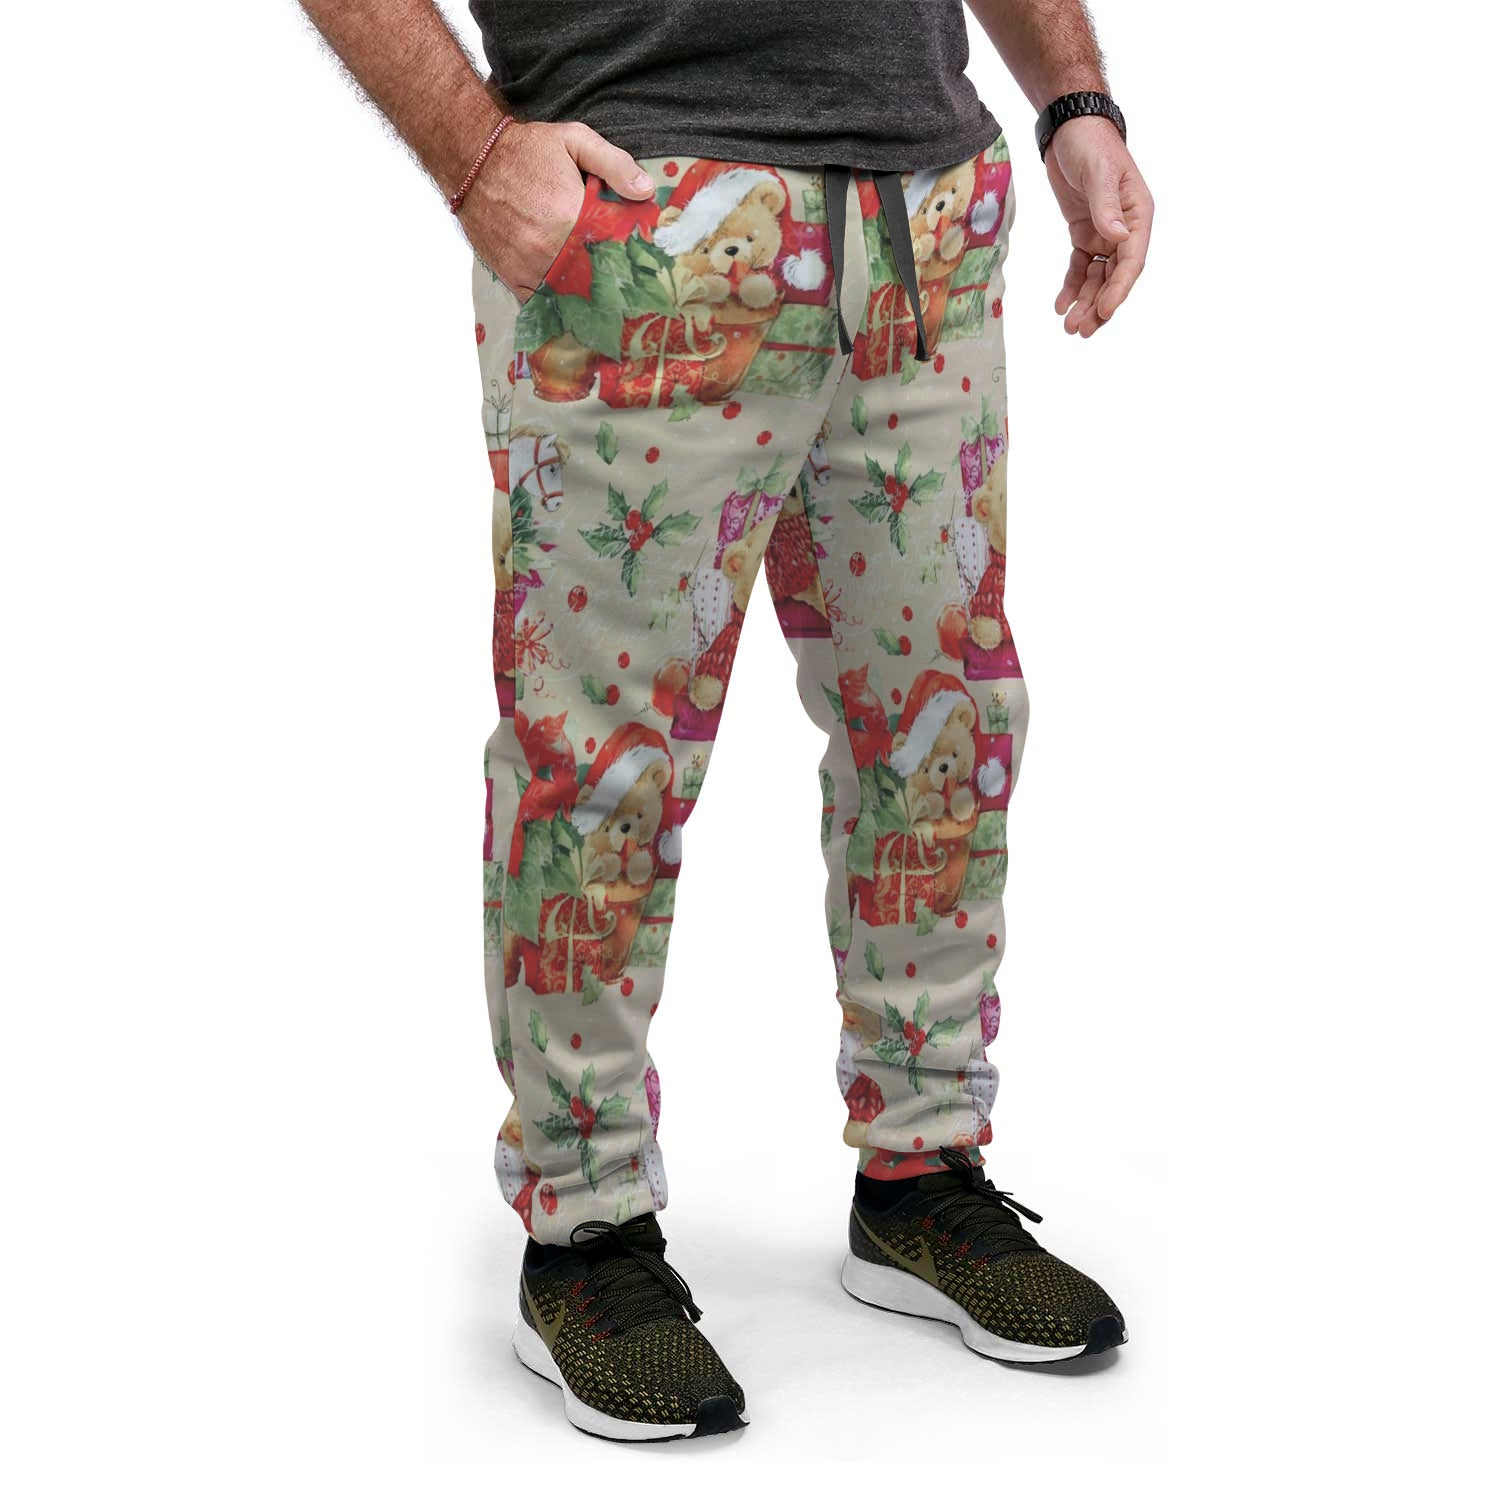 Ugly Christmas Sweat-PANTS | Presents and Bear Design